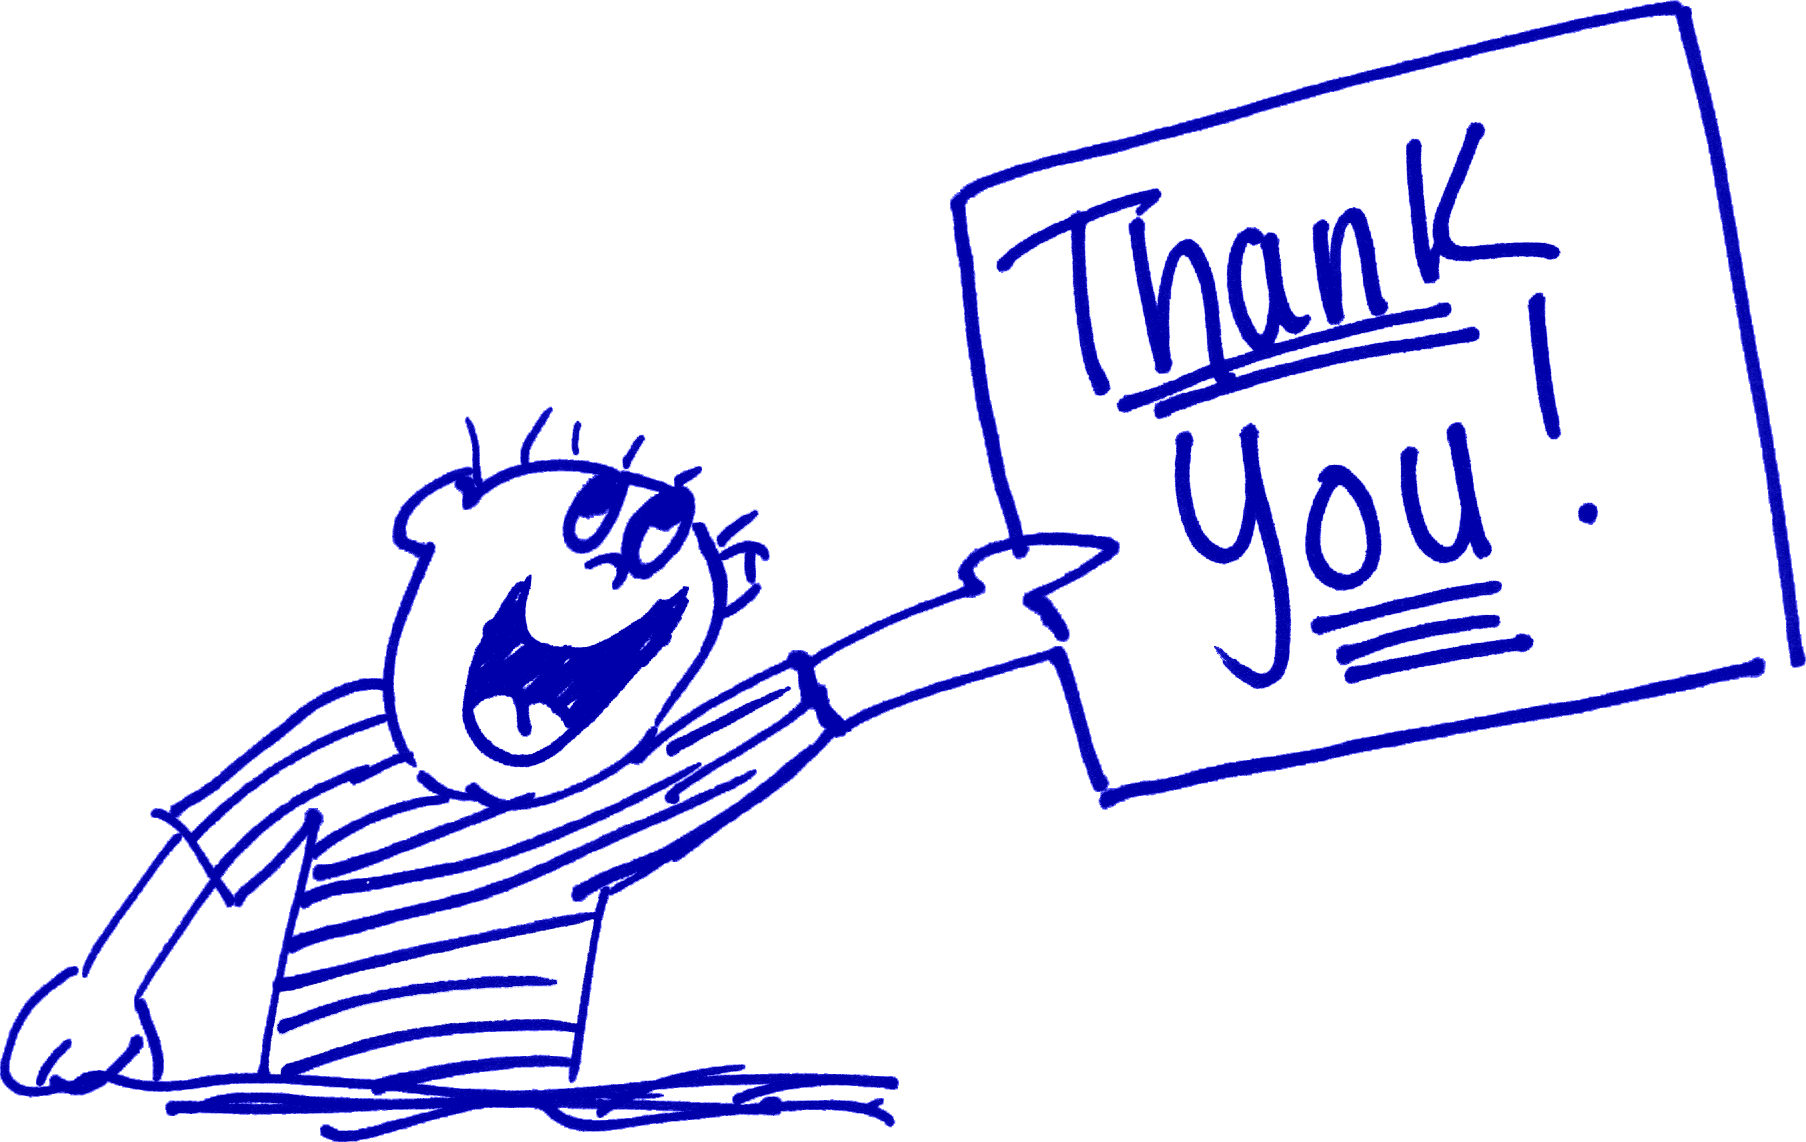 End clipart thank you Animated thank thank clipart panda